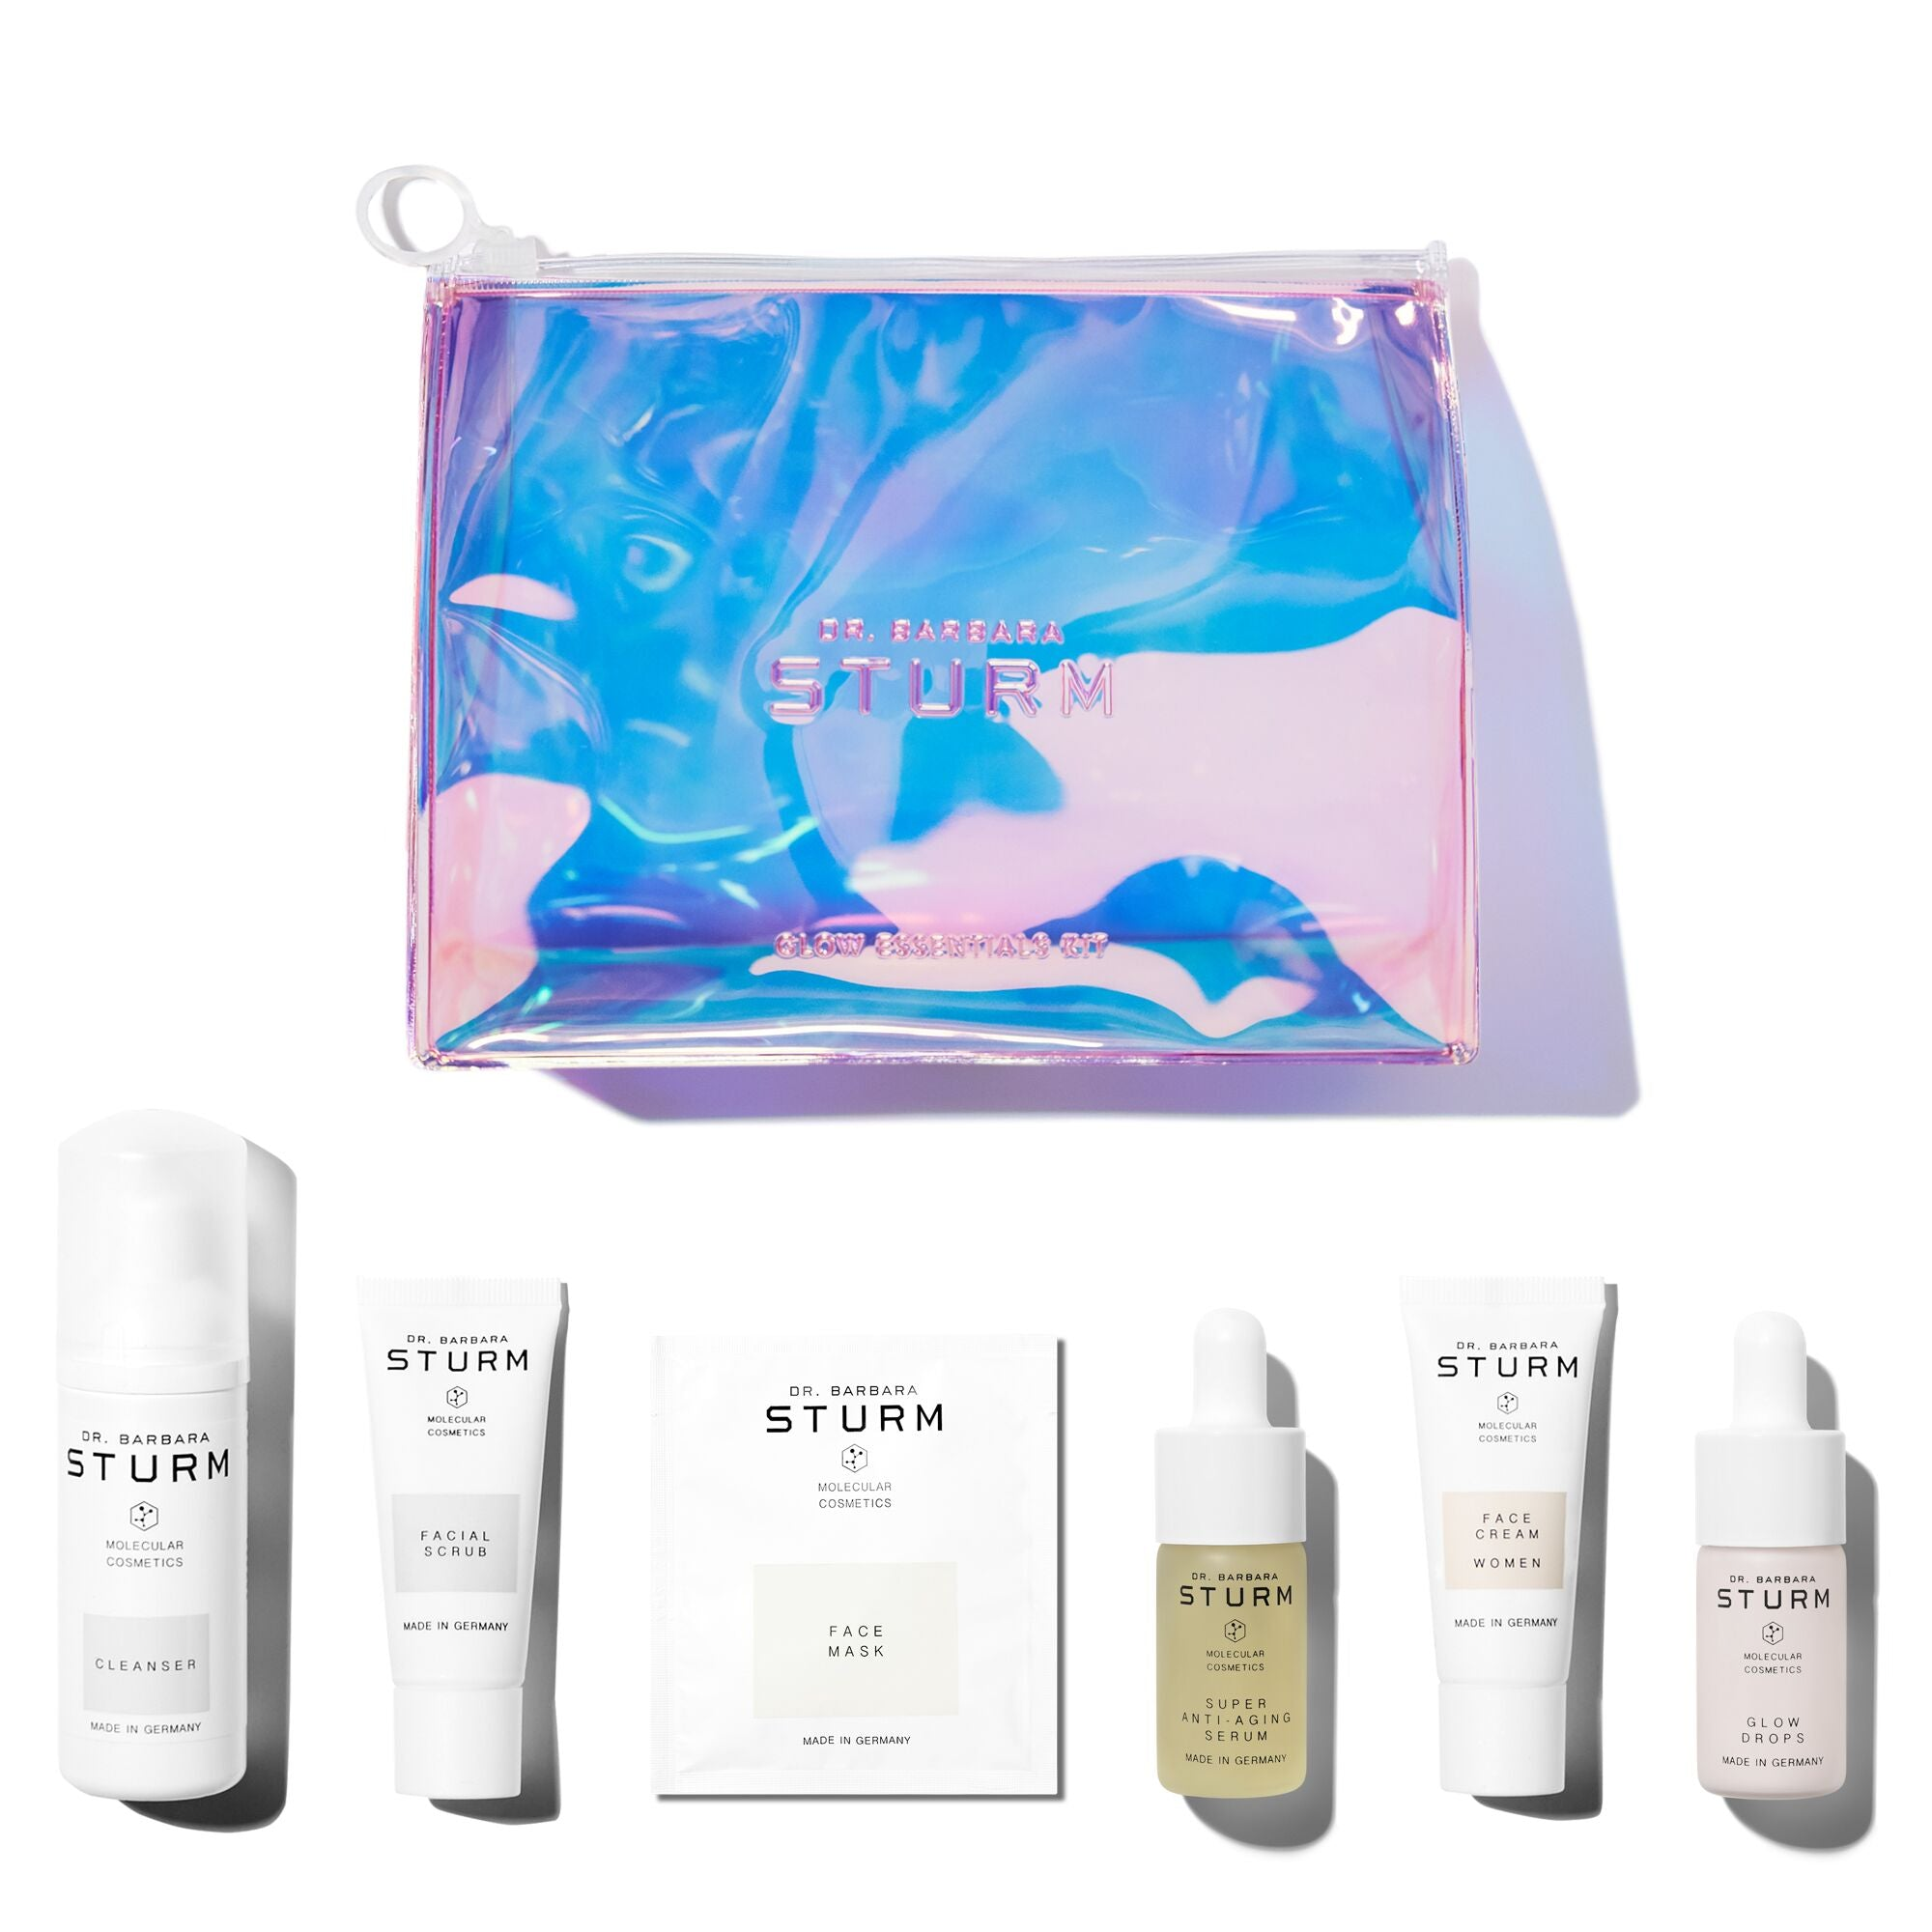 Buy Dr. Babara Sturm Glow Essentials Kit wellness products from Delaire Graff Estate online store